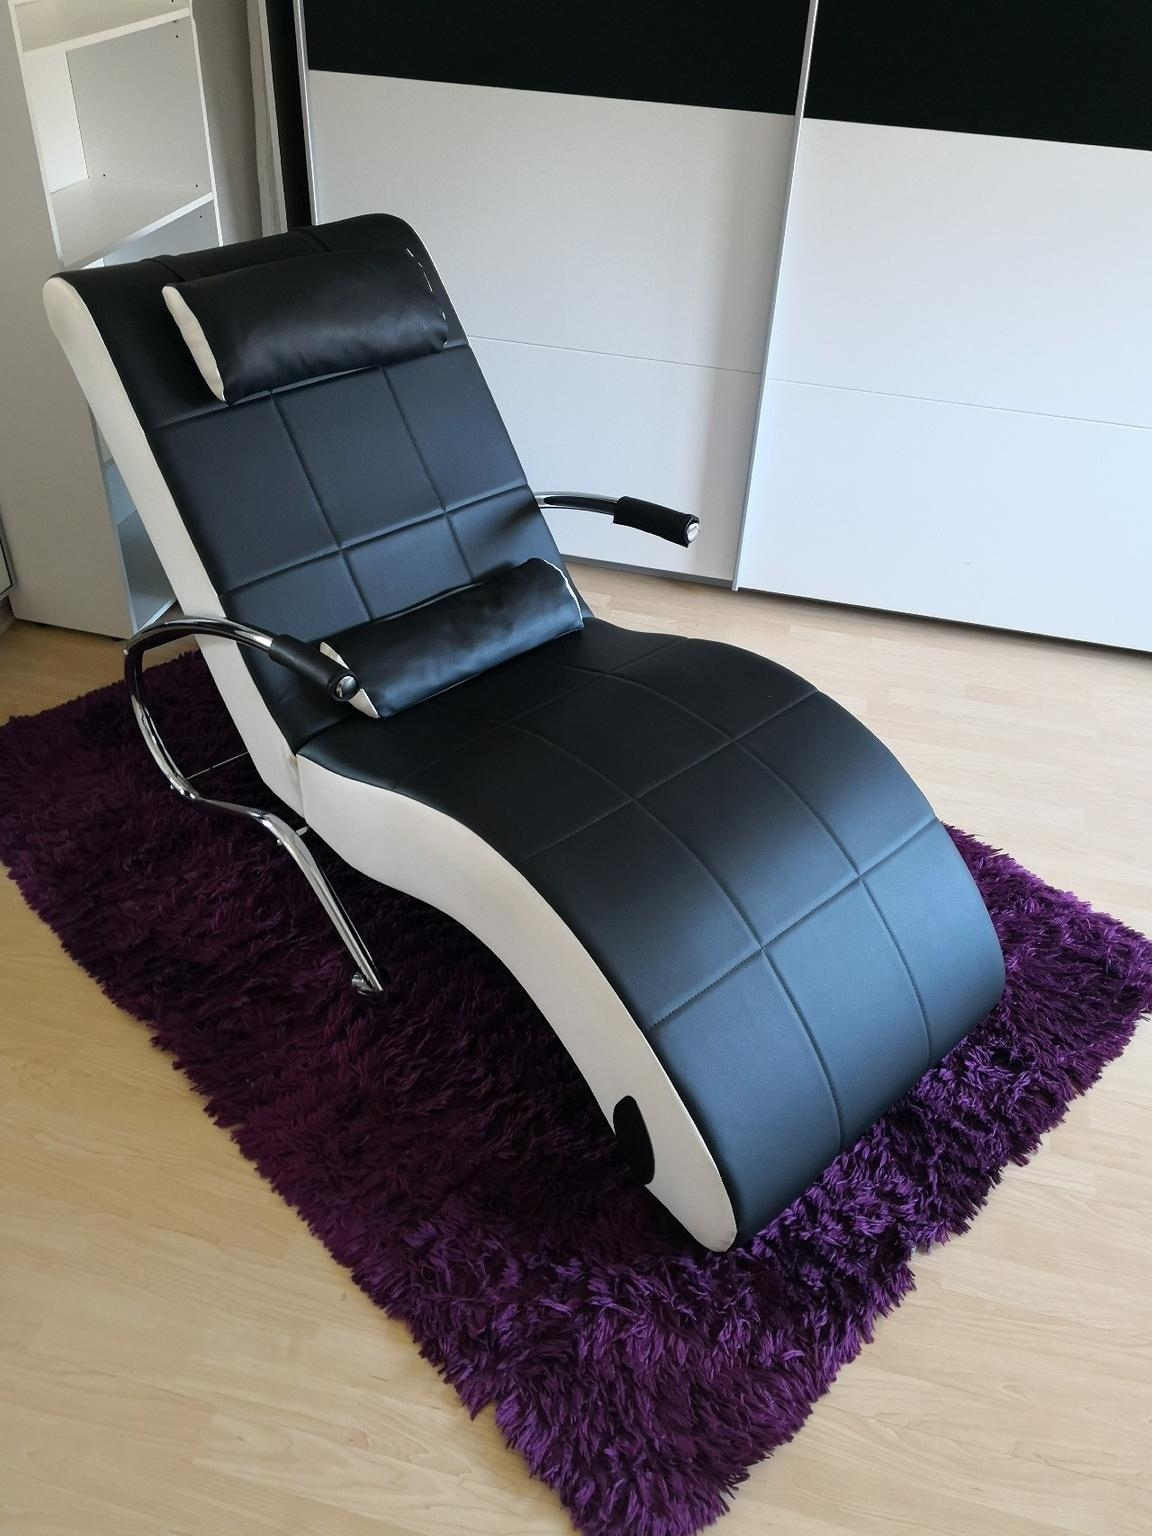 Relaxliege Mit Kippfunktion Relaxliege Mit Kippfunktion In 45276 Essen For €50.00 For Sale | Shpock